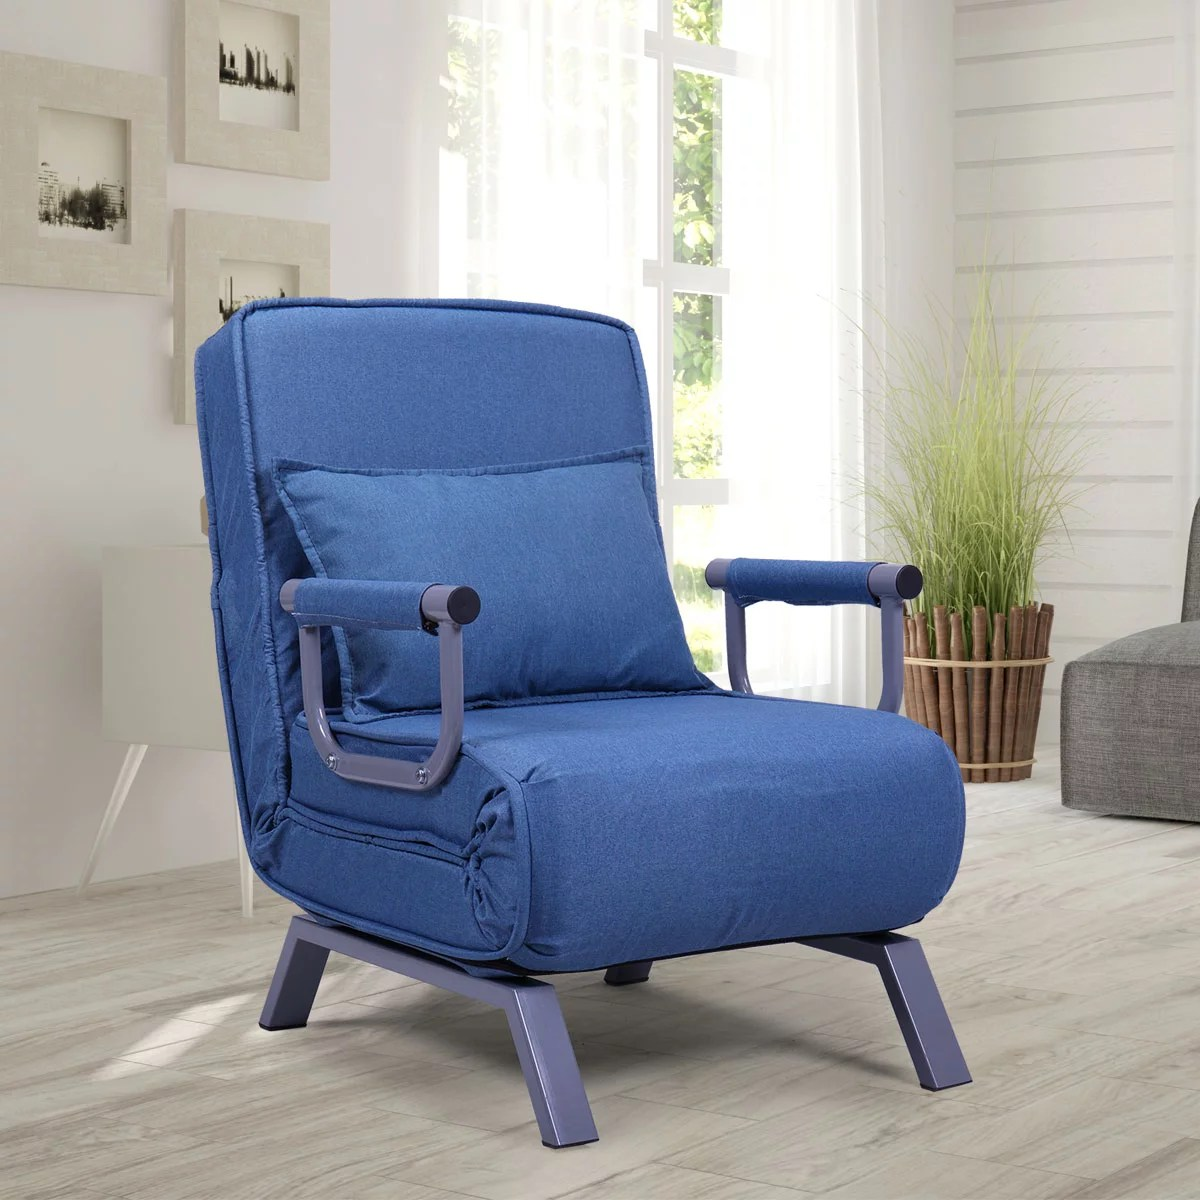 jaxpety fabric folding chaise lounge convertible single sleeper sofa chair with armrest and pillow blue